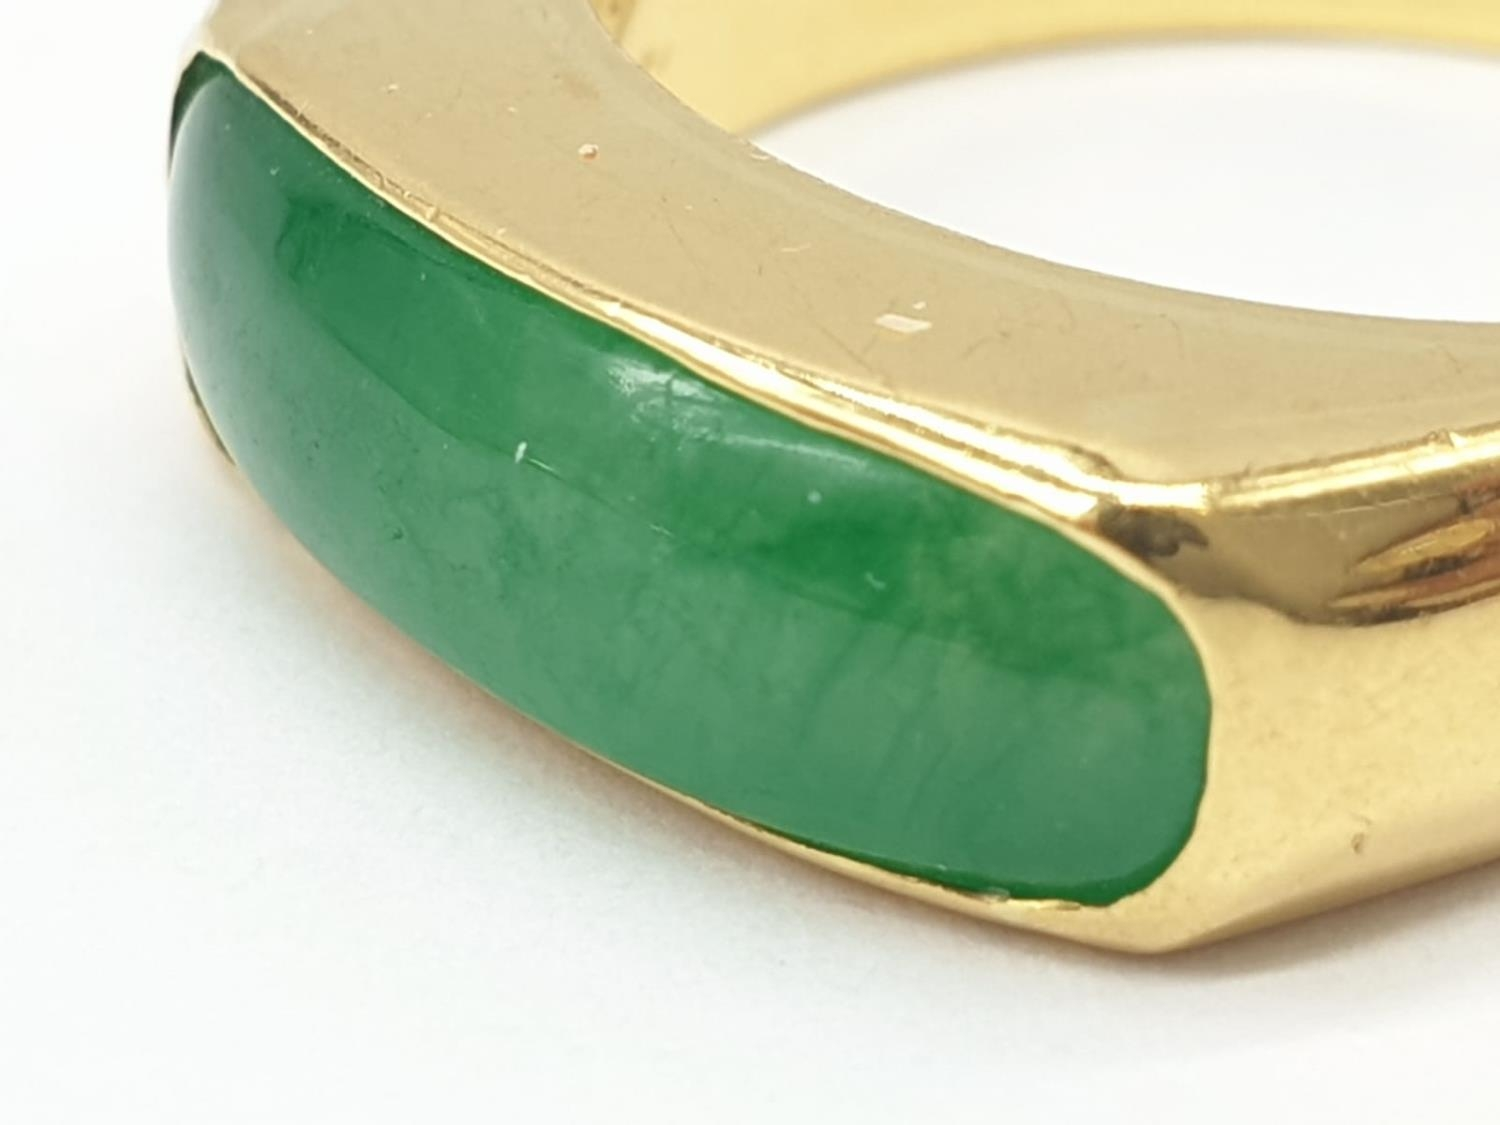 22ct gold ring with natural jade stone. 7.7g in weight and size T. - Image 2 of 7